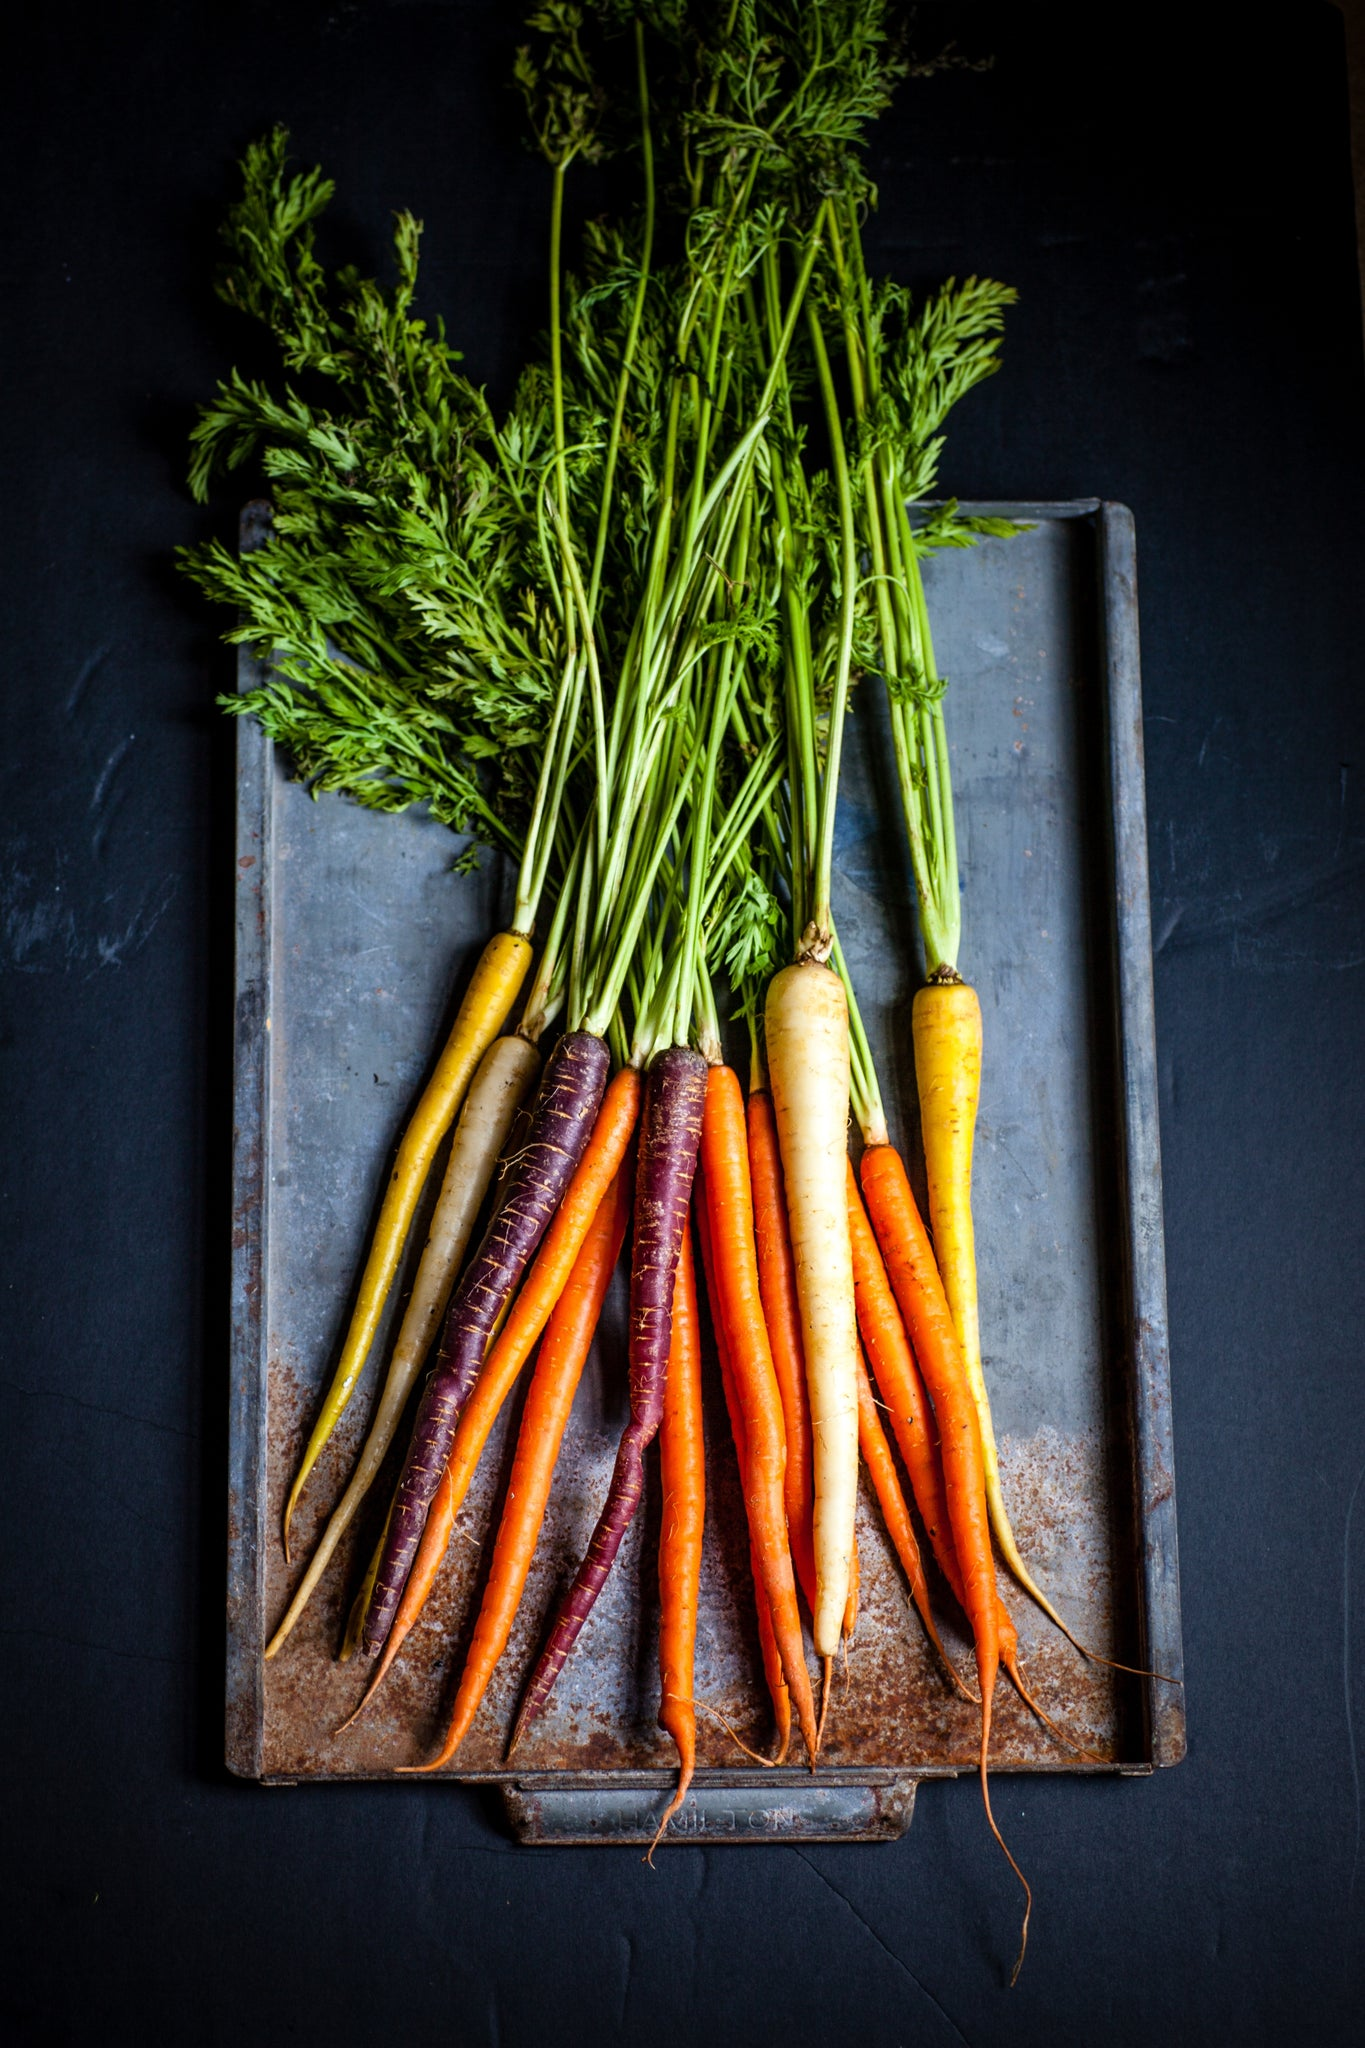 The benefits of carrot seed oil for the skin